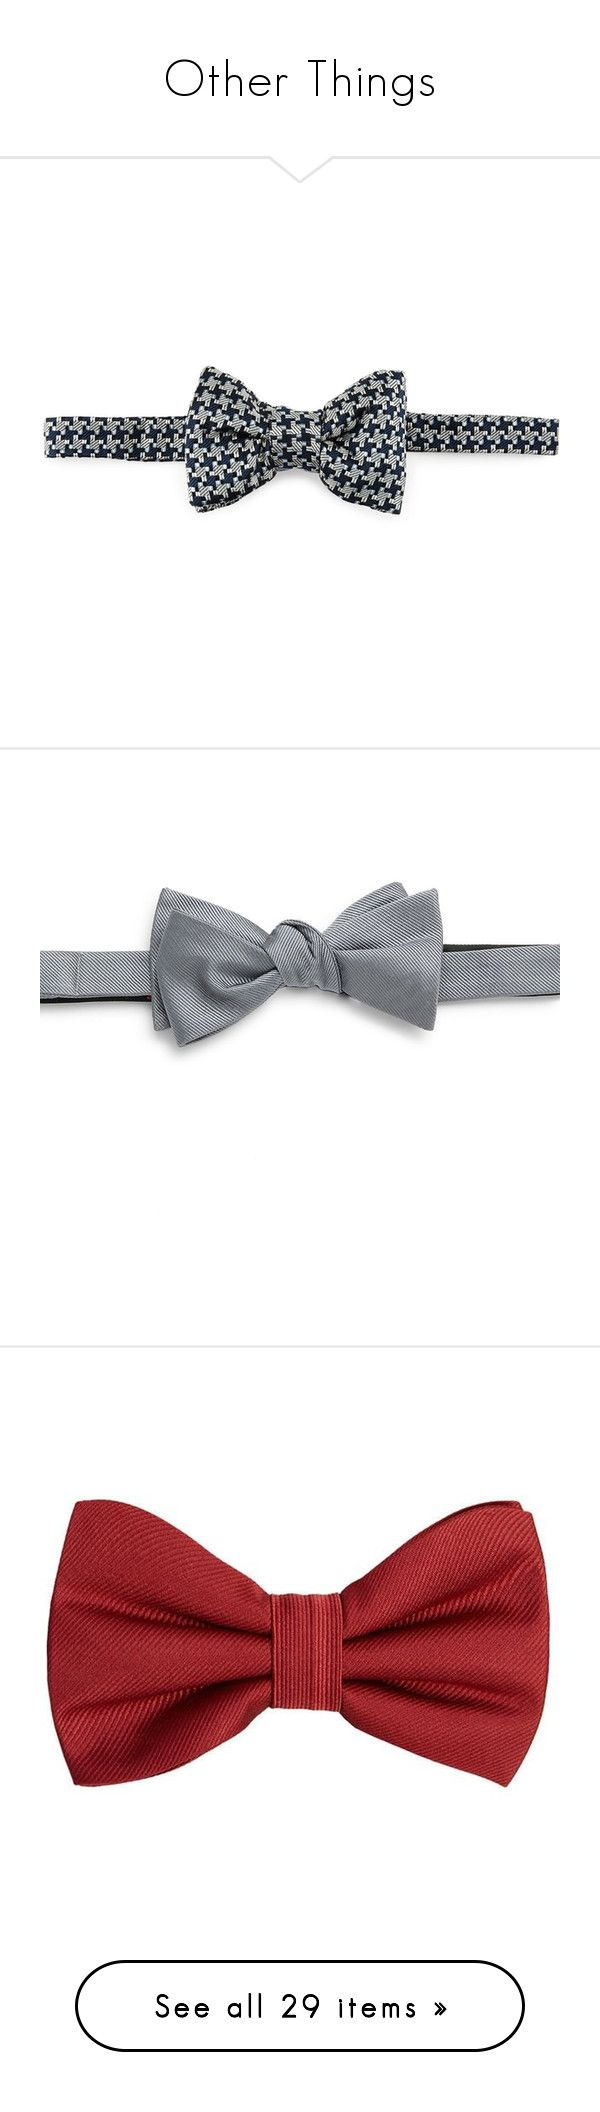 """Other Things"" by rose-chan-needs-a-life ❤ liked on Polyvore featuring men's fashion, men's accessories, men's neckwear, bow ties, blue, mens ties, mens silk ties, mens bow ties, mens wide ties and mens silk bow ties"